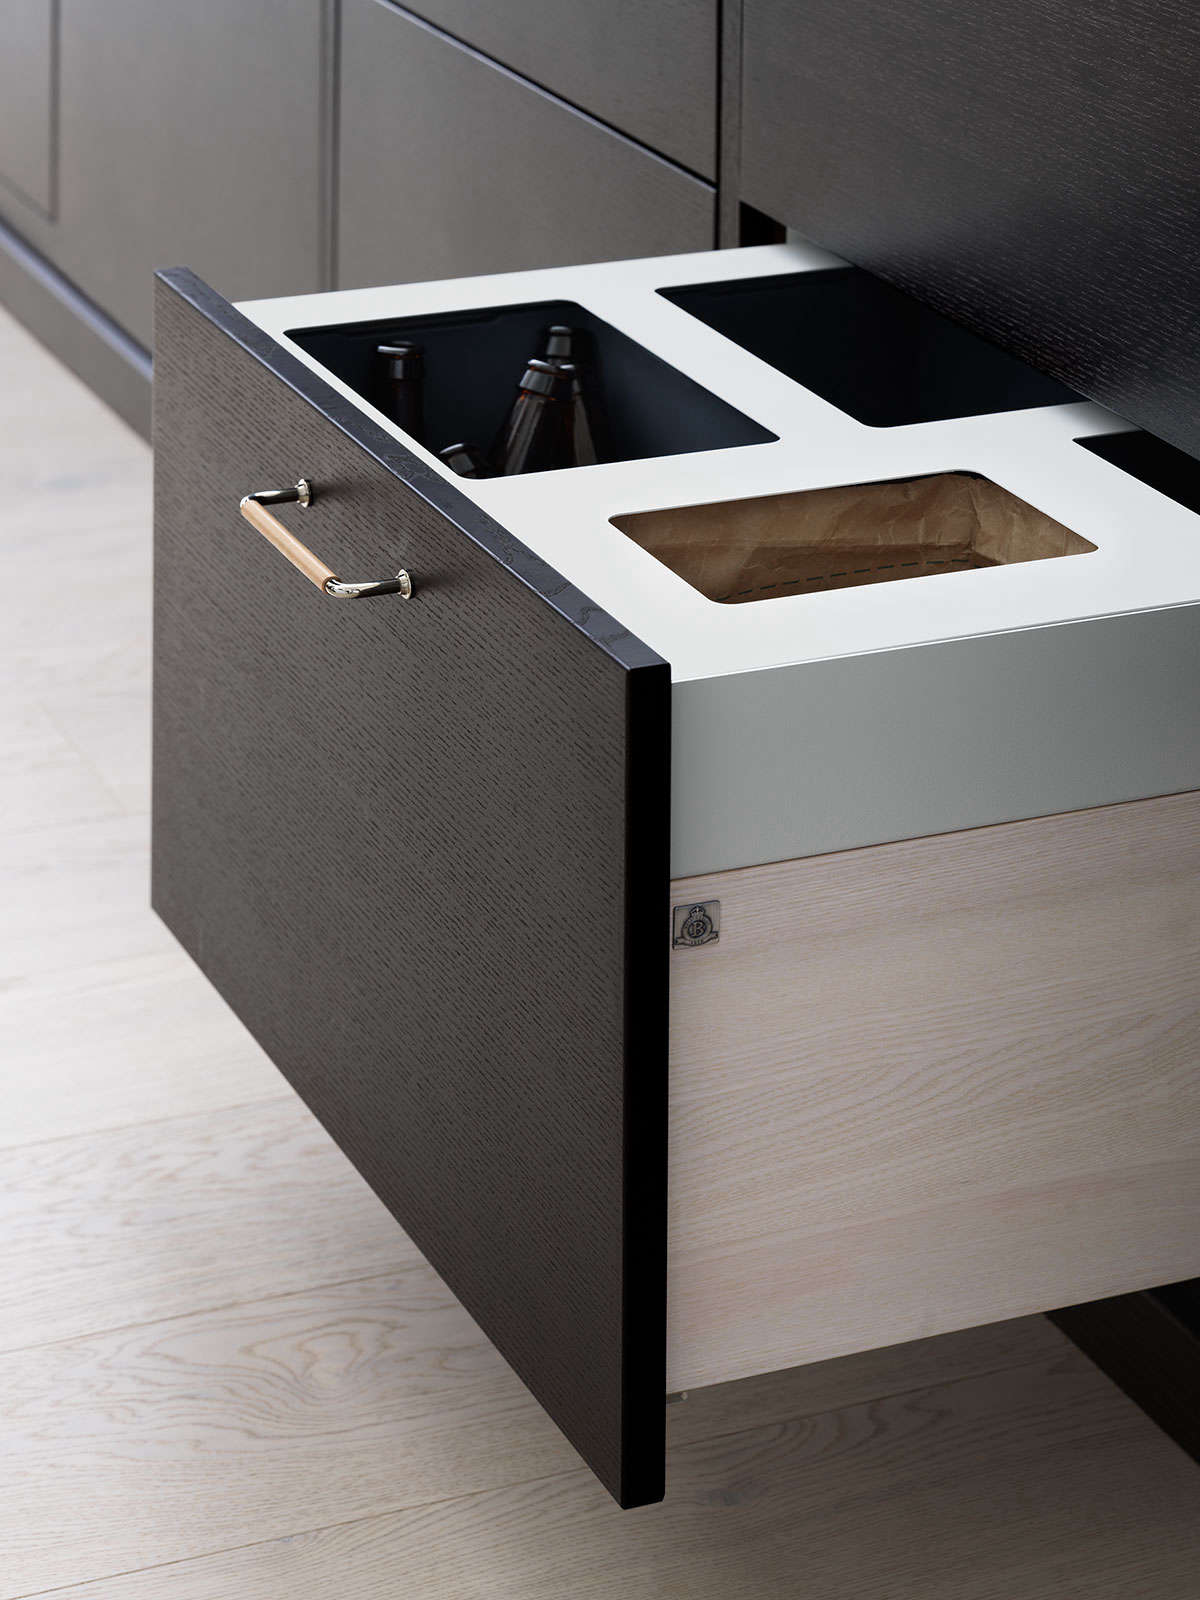 Swedish company Ballingslöv's Bistro kitchen system features a garbagedrawer with separate recycling compartments for glass, paper, food waste, and metal. SeeA Swedish Kitchen with a Place for Everything.Photograph courtesy ofBallingslöv.